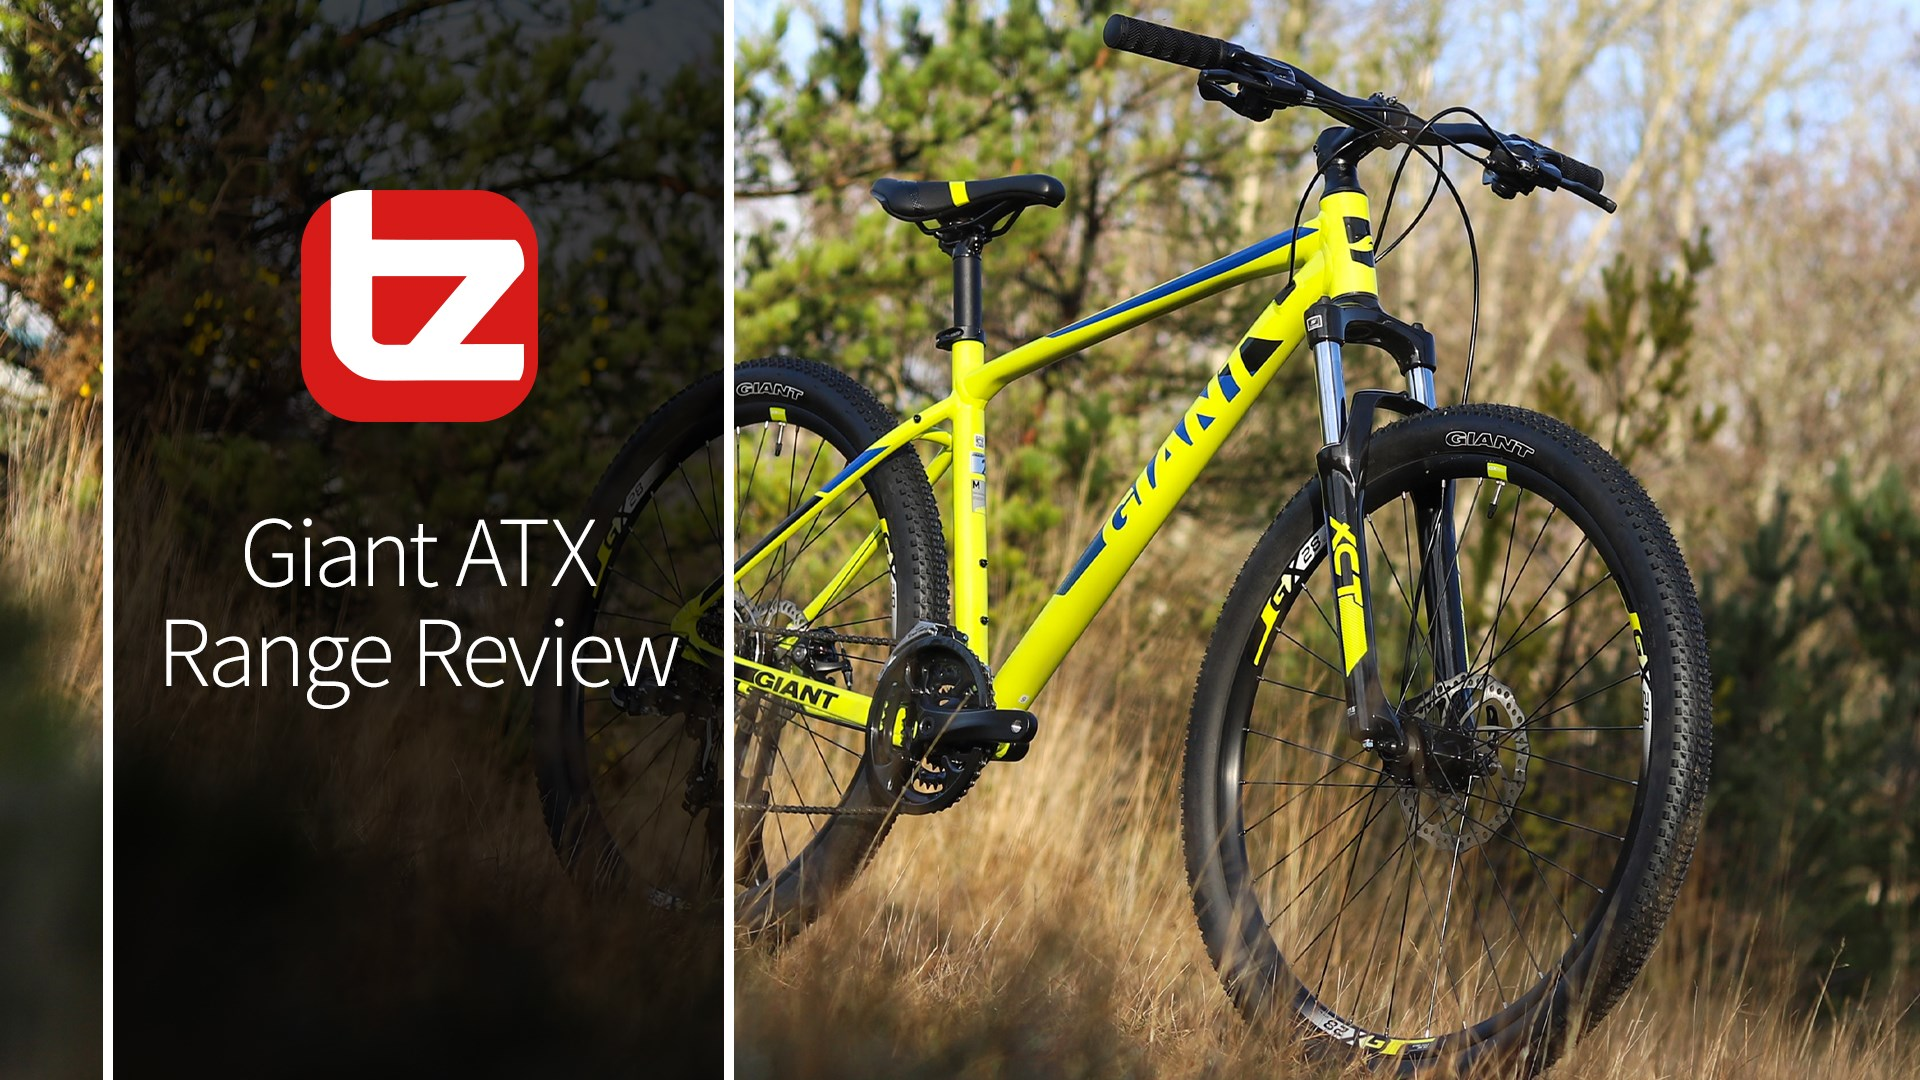 2018 Giant ATX Range Review